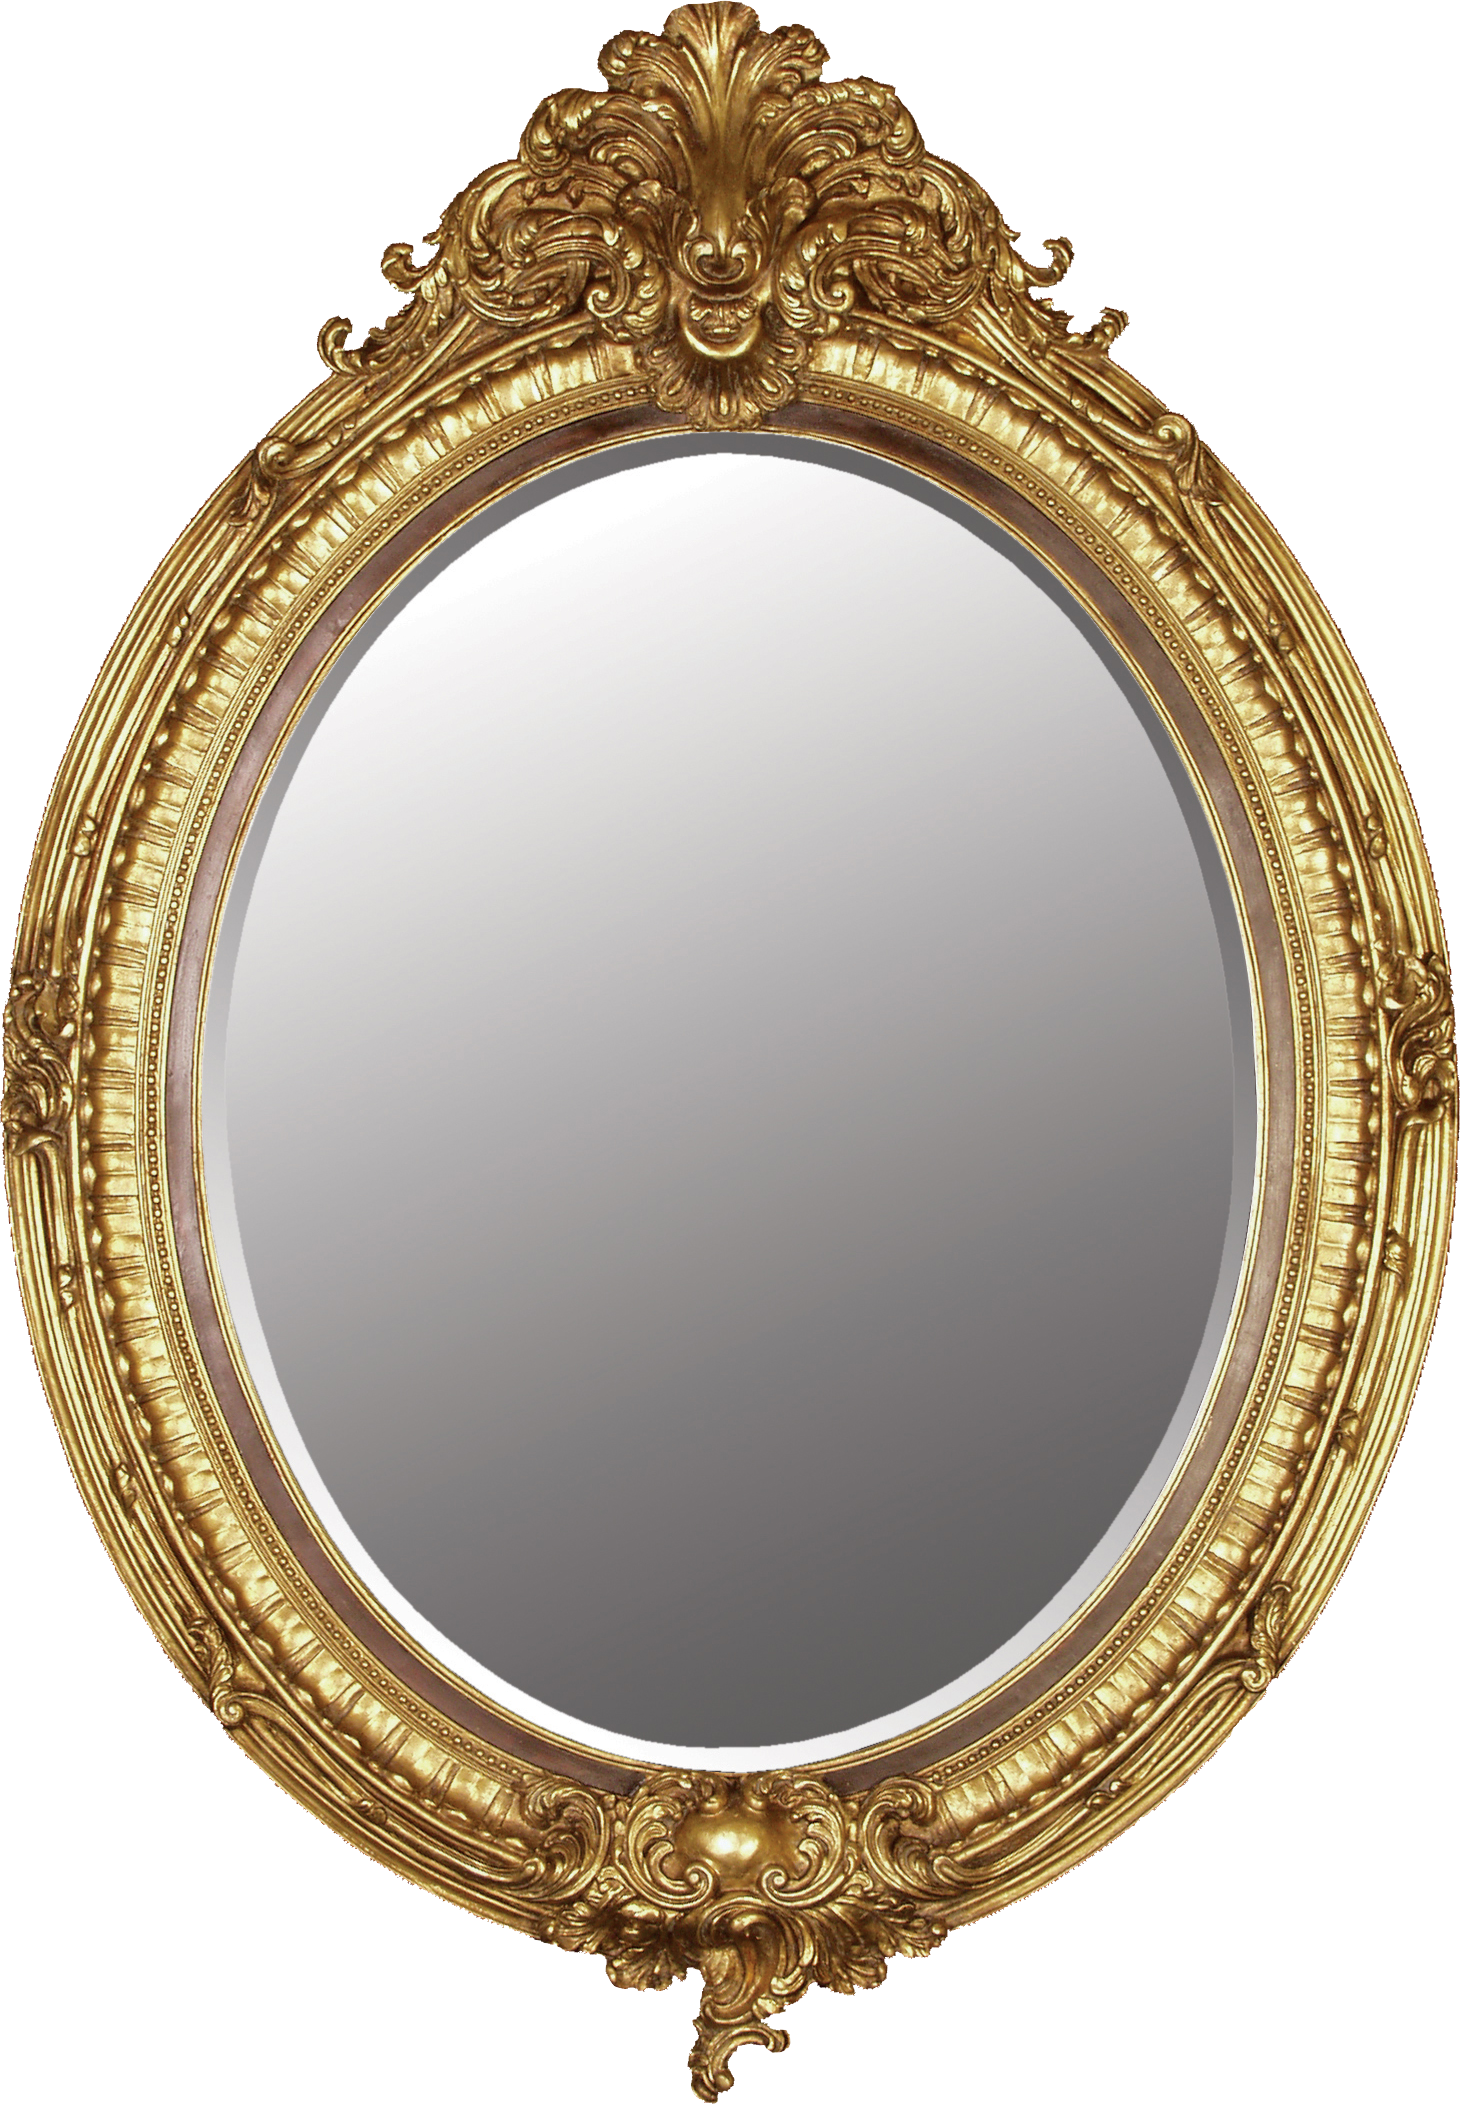 Mirror PNG - 23243